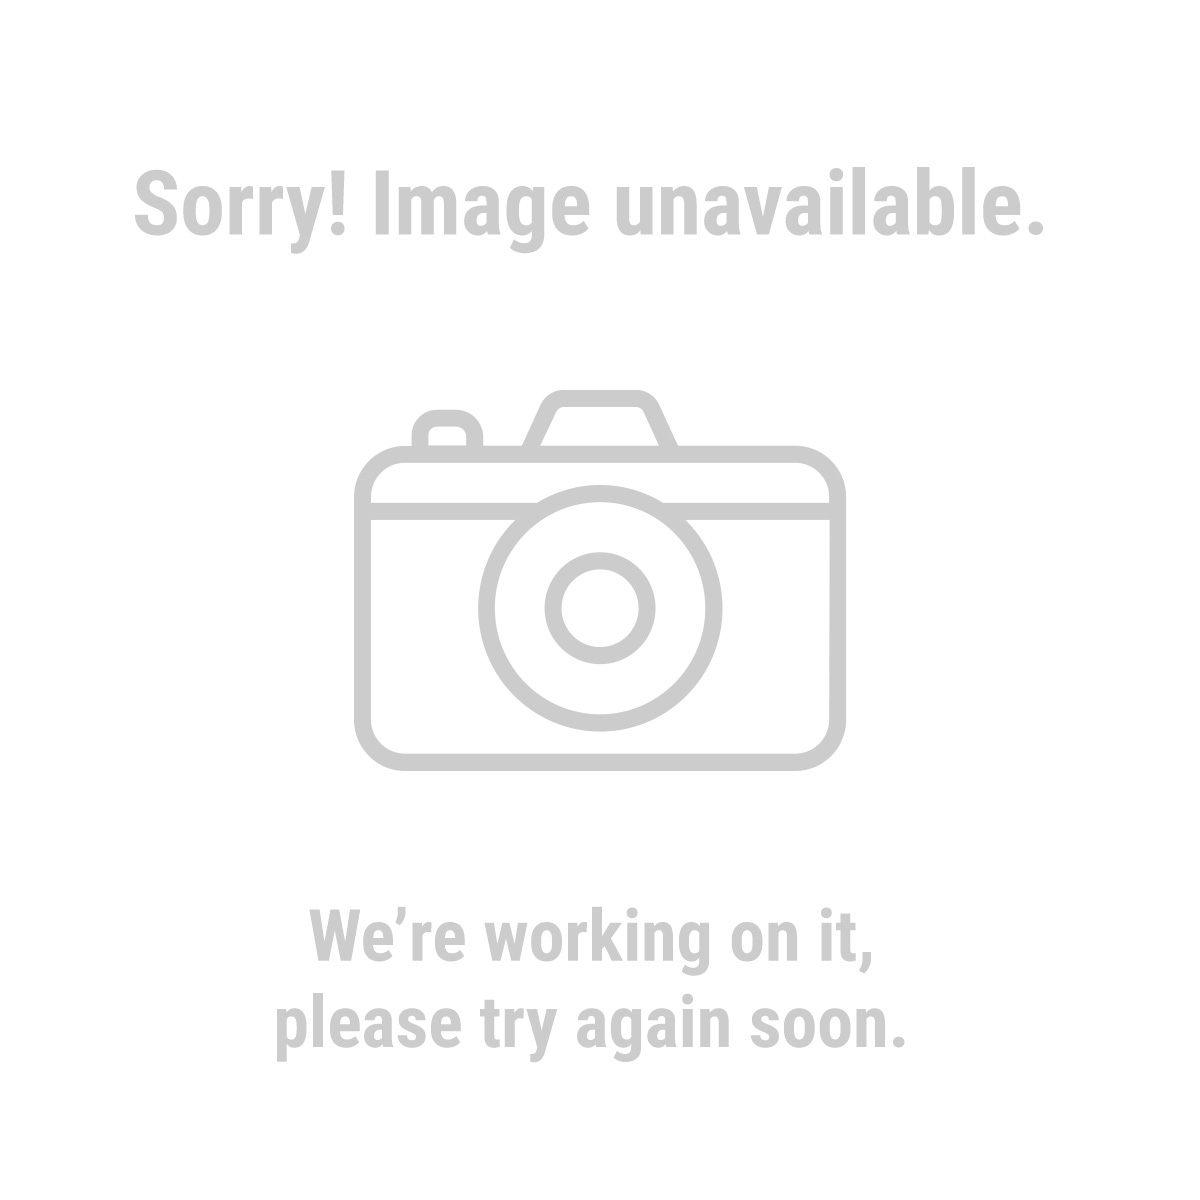 Digital Multimeter - Save on this AC/DC Digital Multimeter